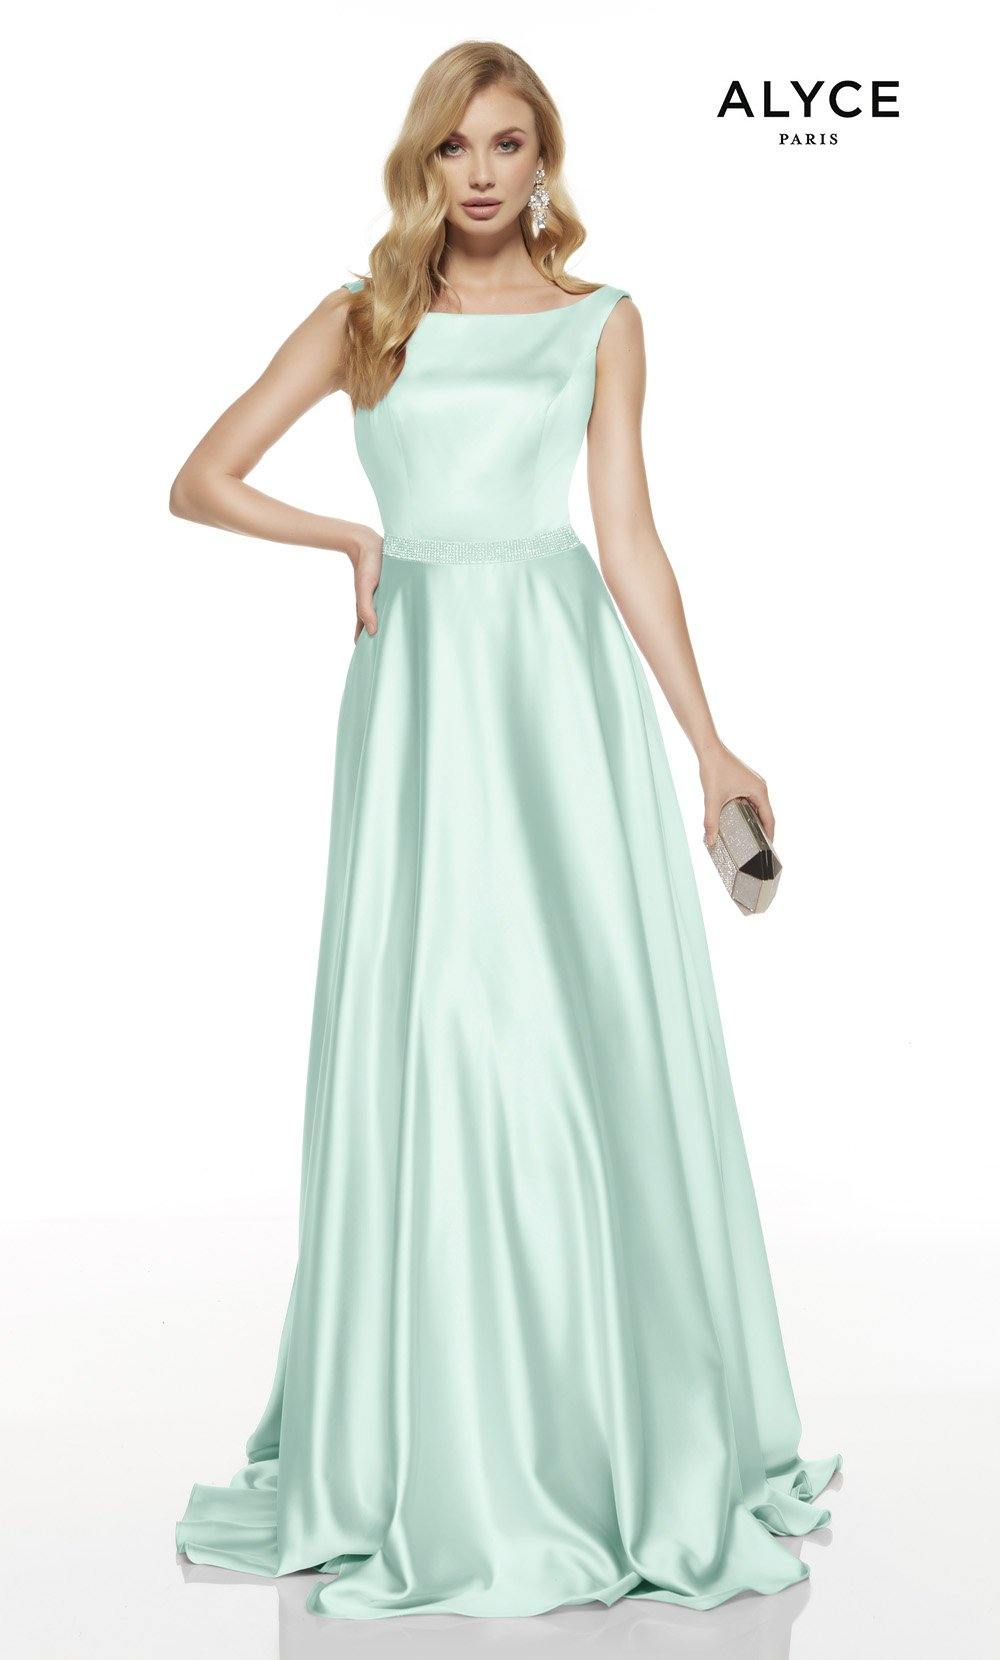 Sea Glass formal dress with a bateau neckline